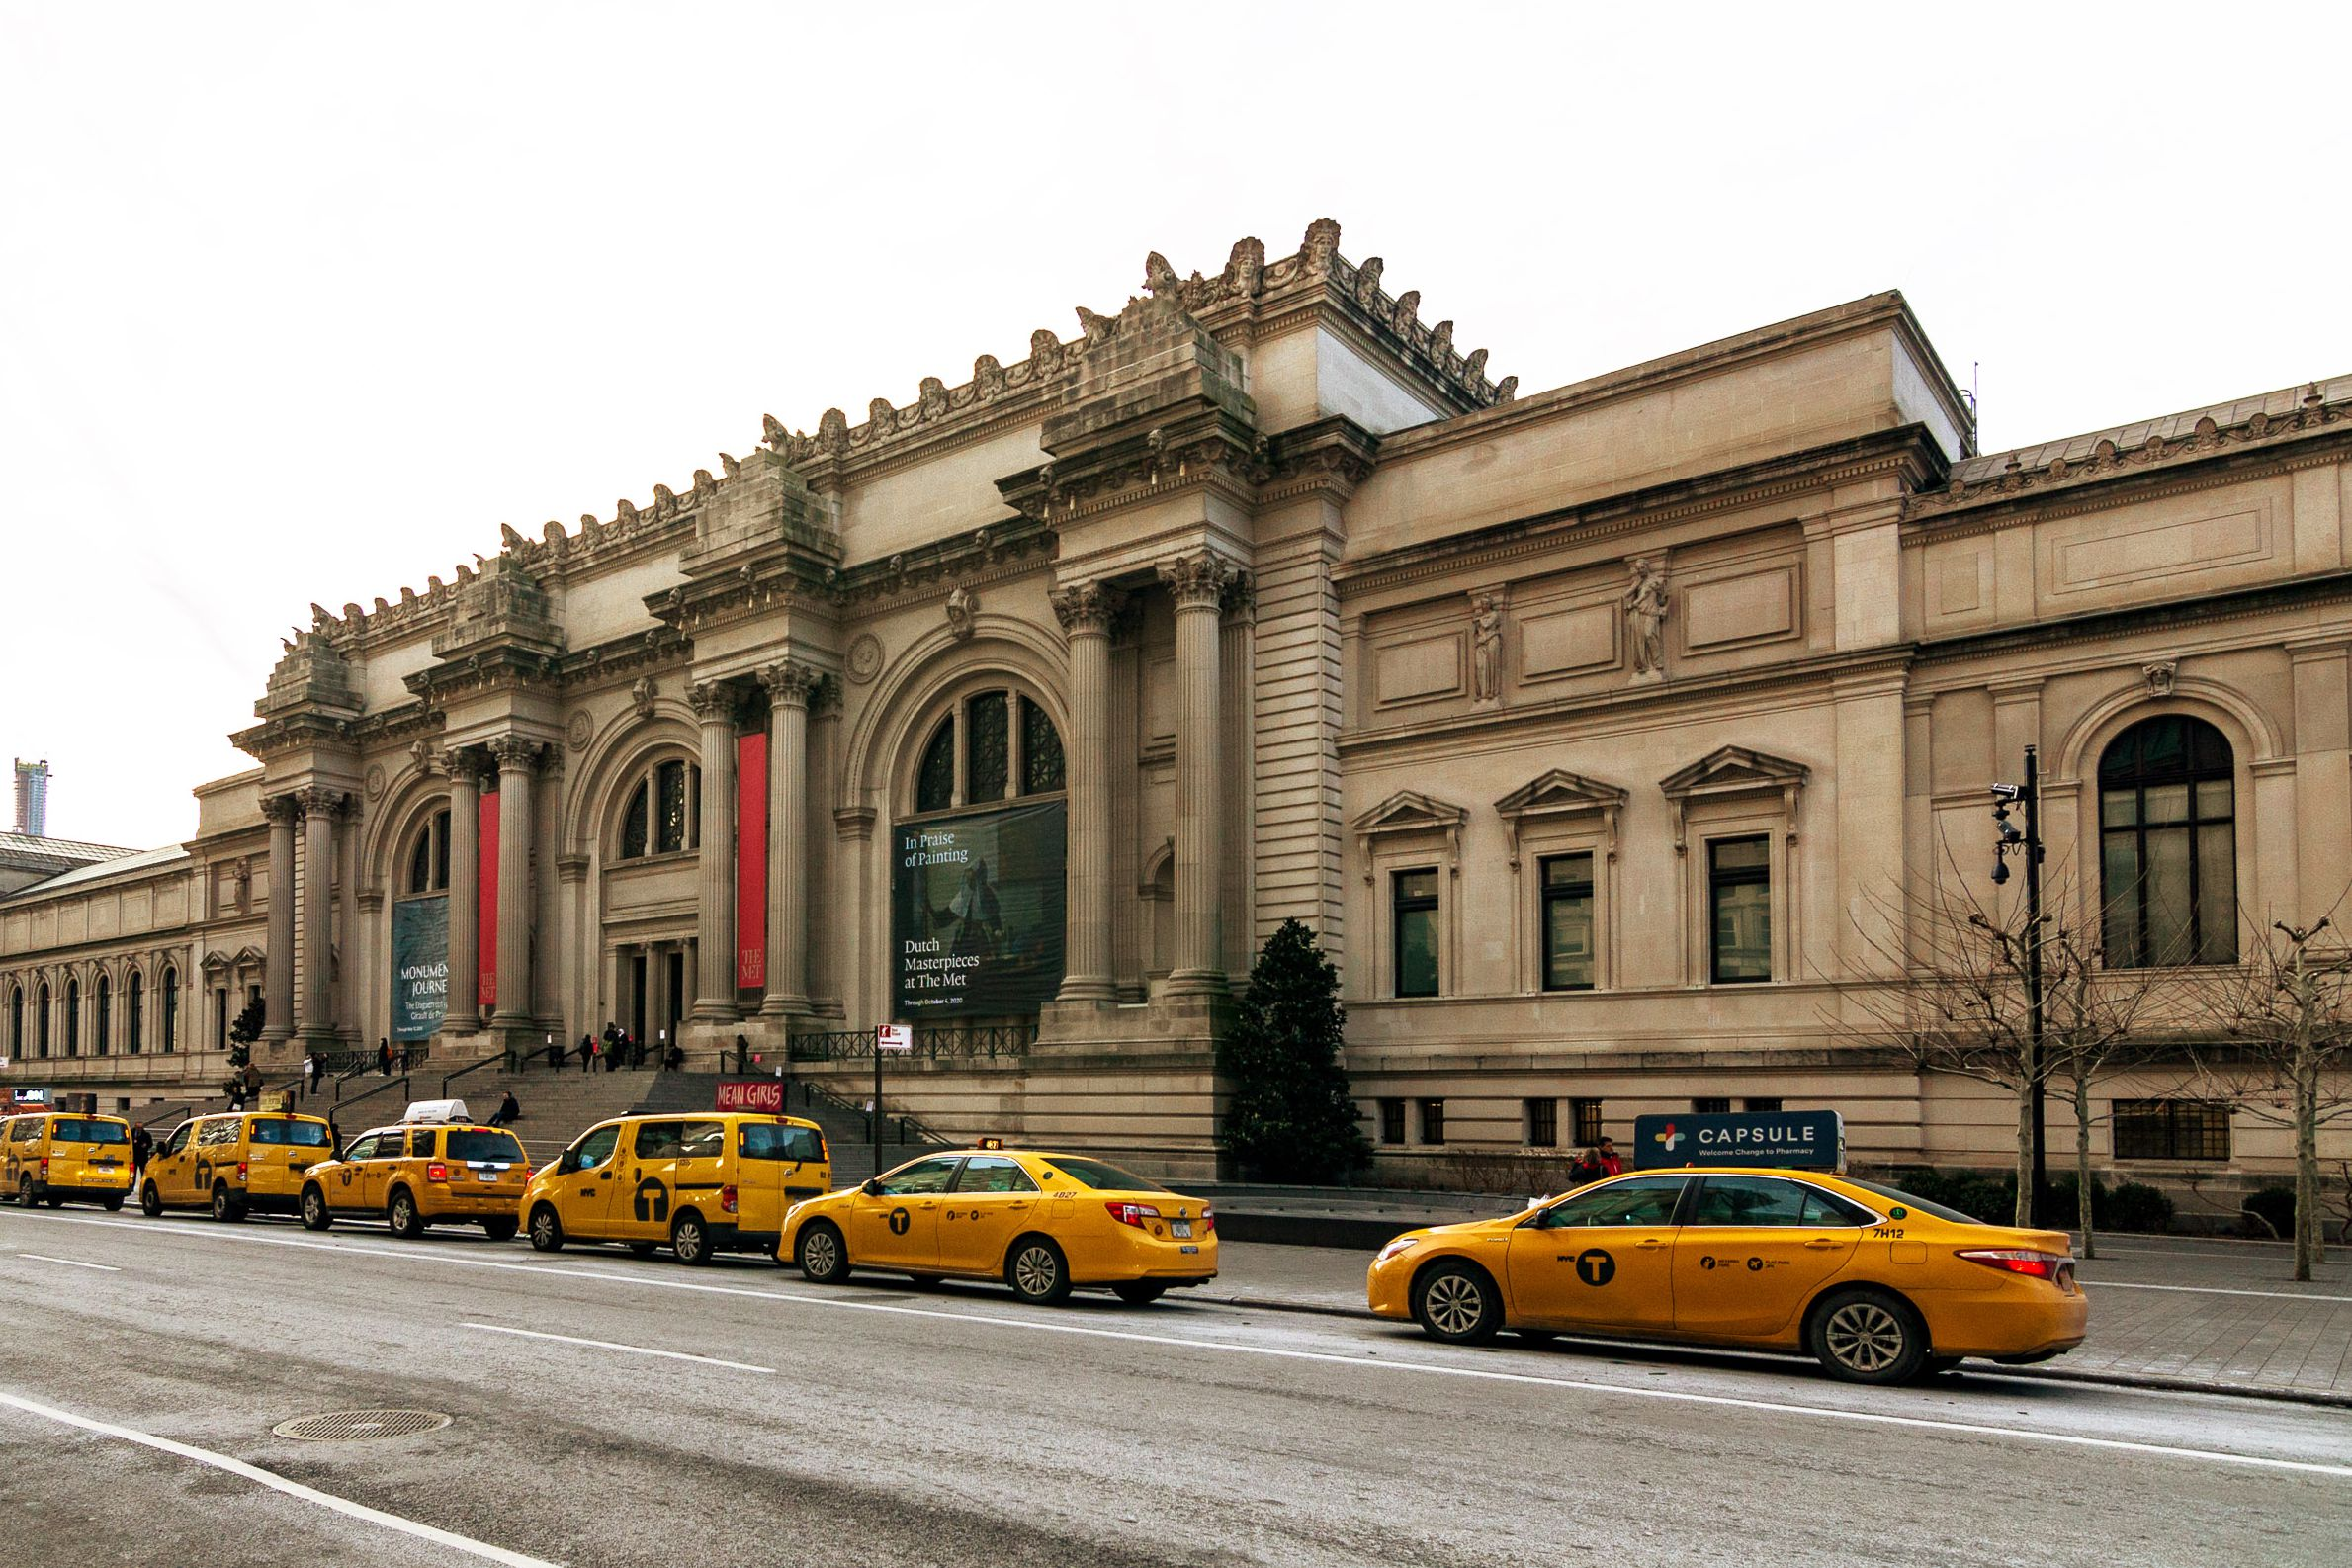 The front of the Met